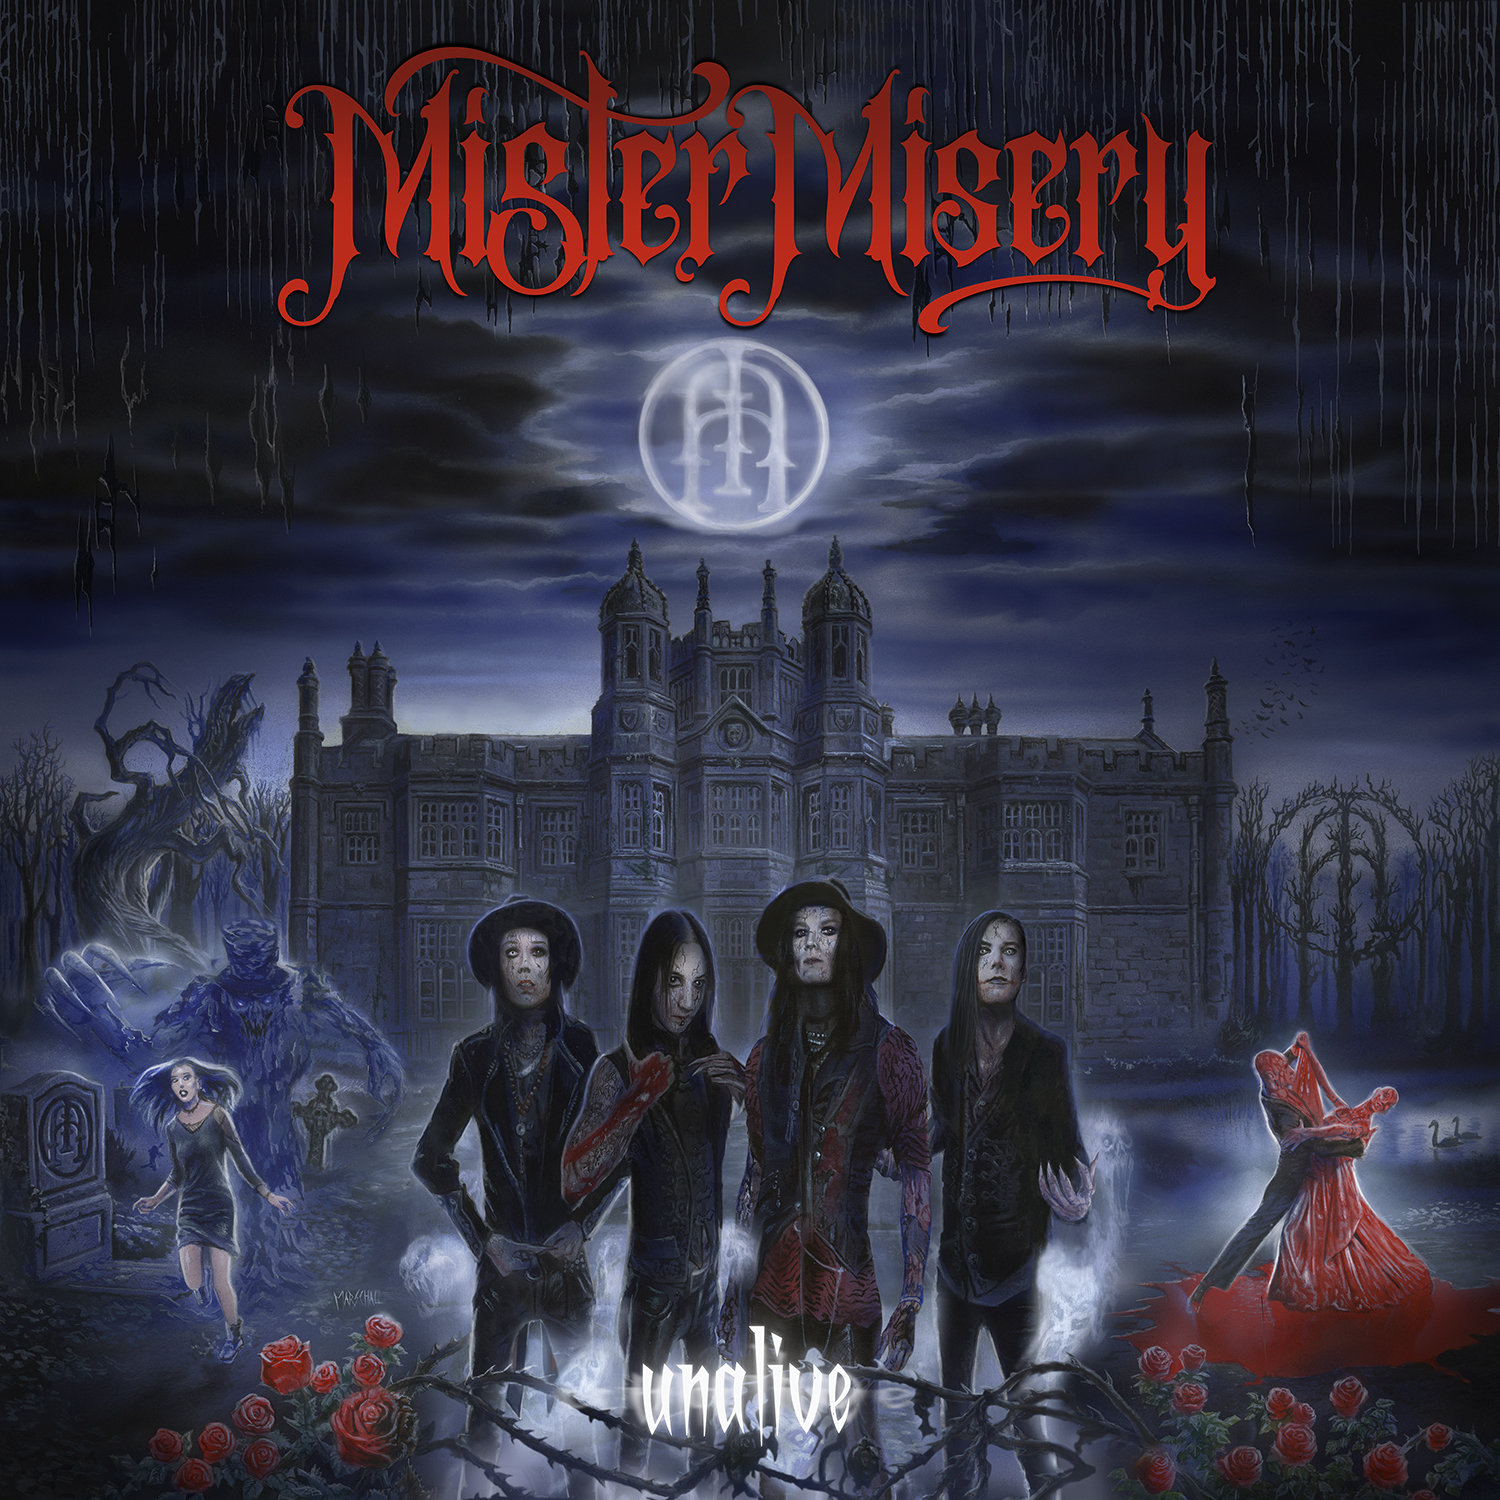 mister misery unalive albumcover